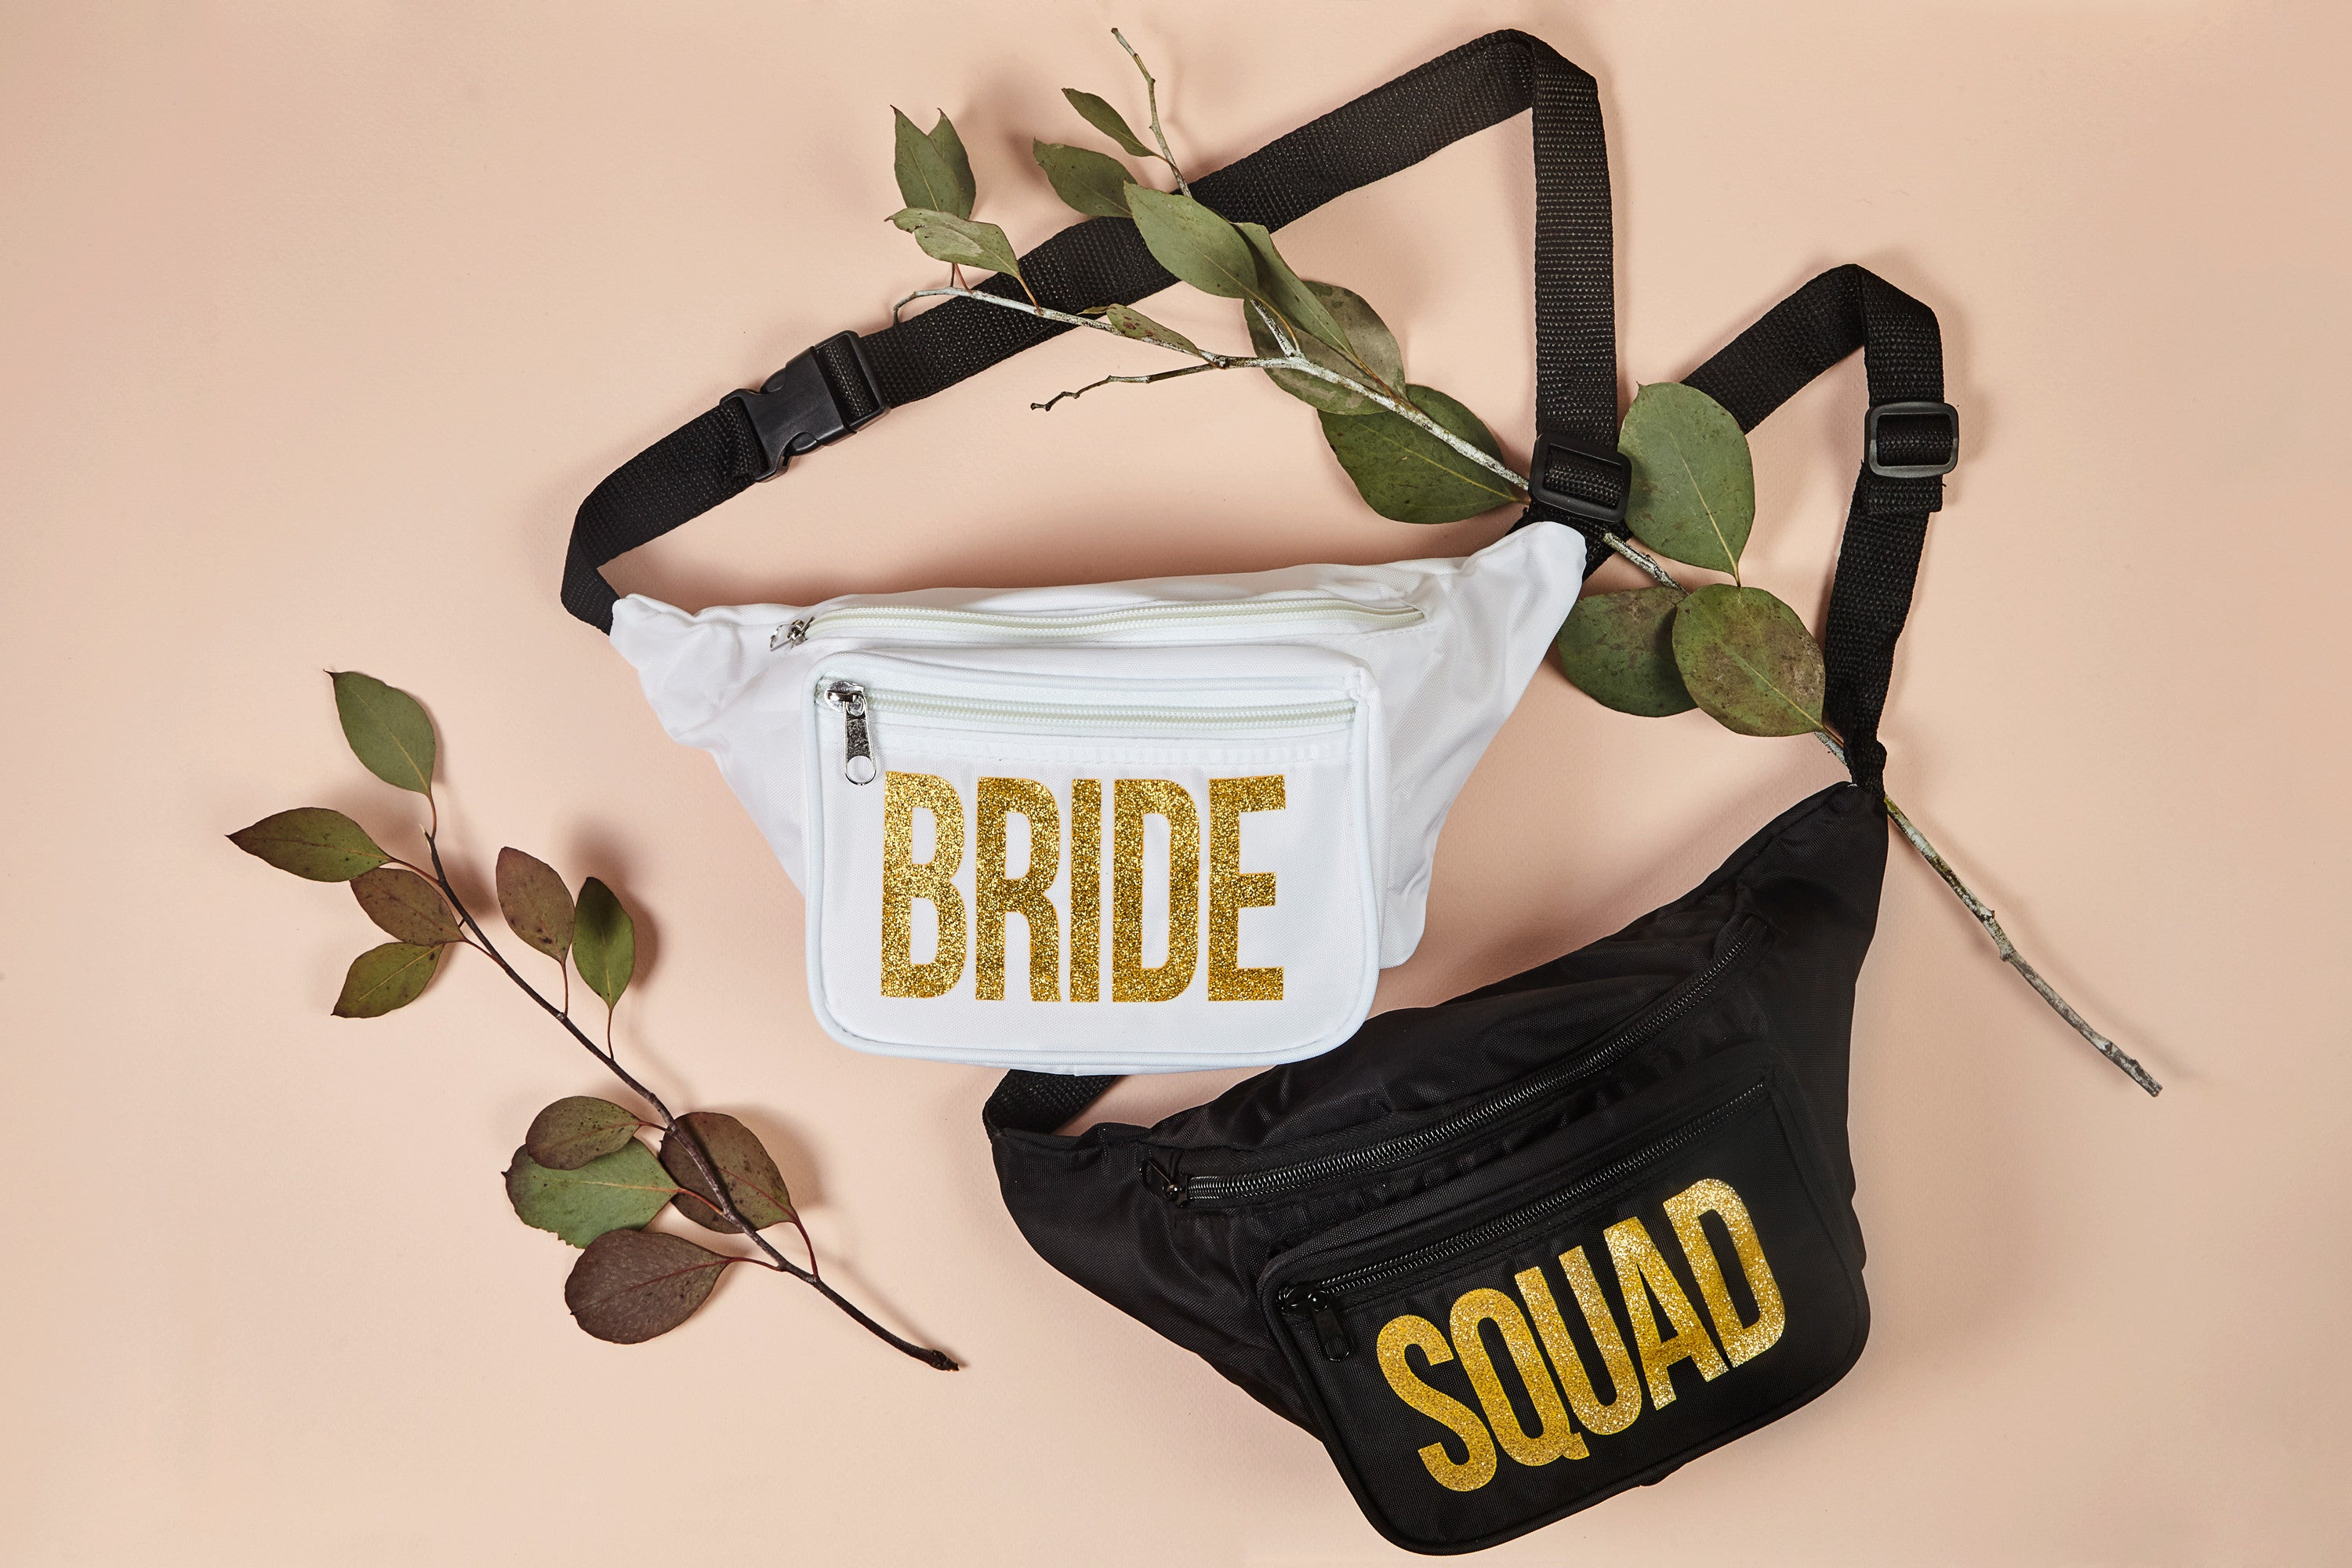 d2a8d4f106fb ... Bride Squad Fanny Packs - Bachelorette Box